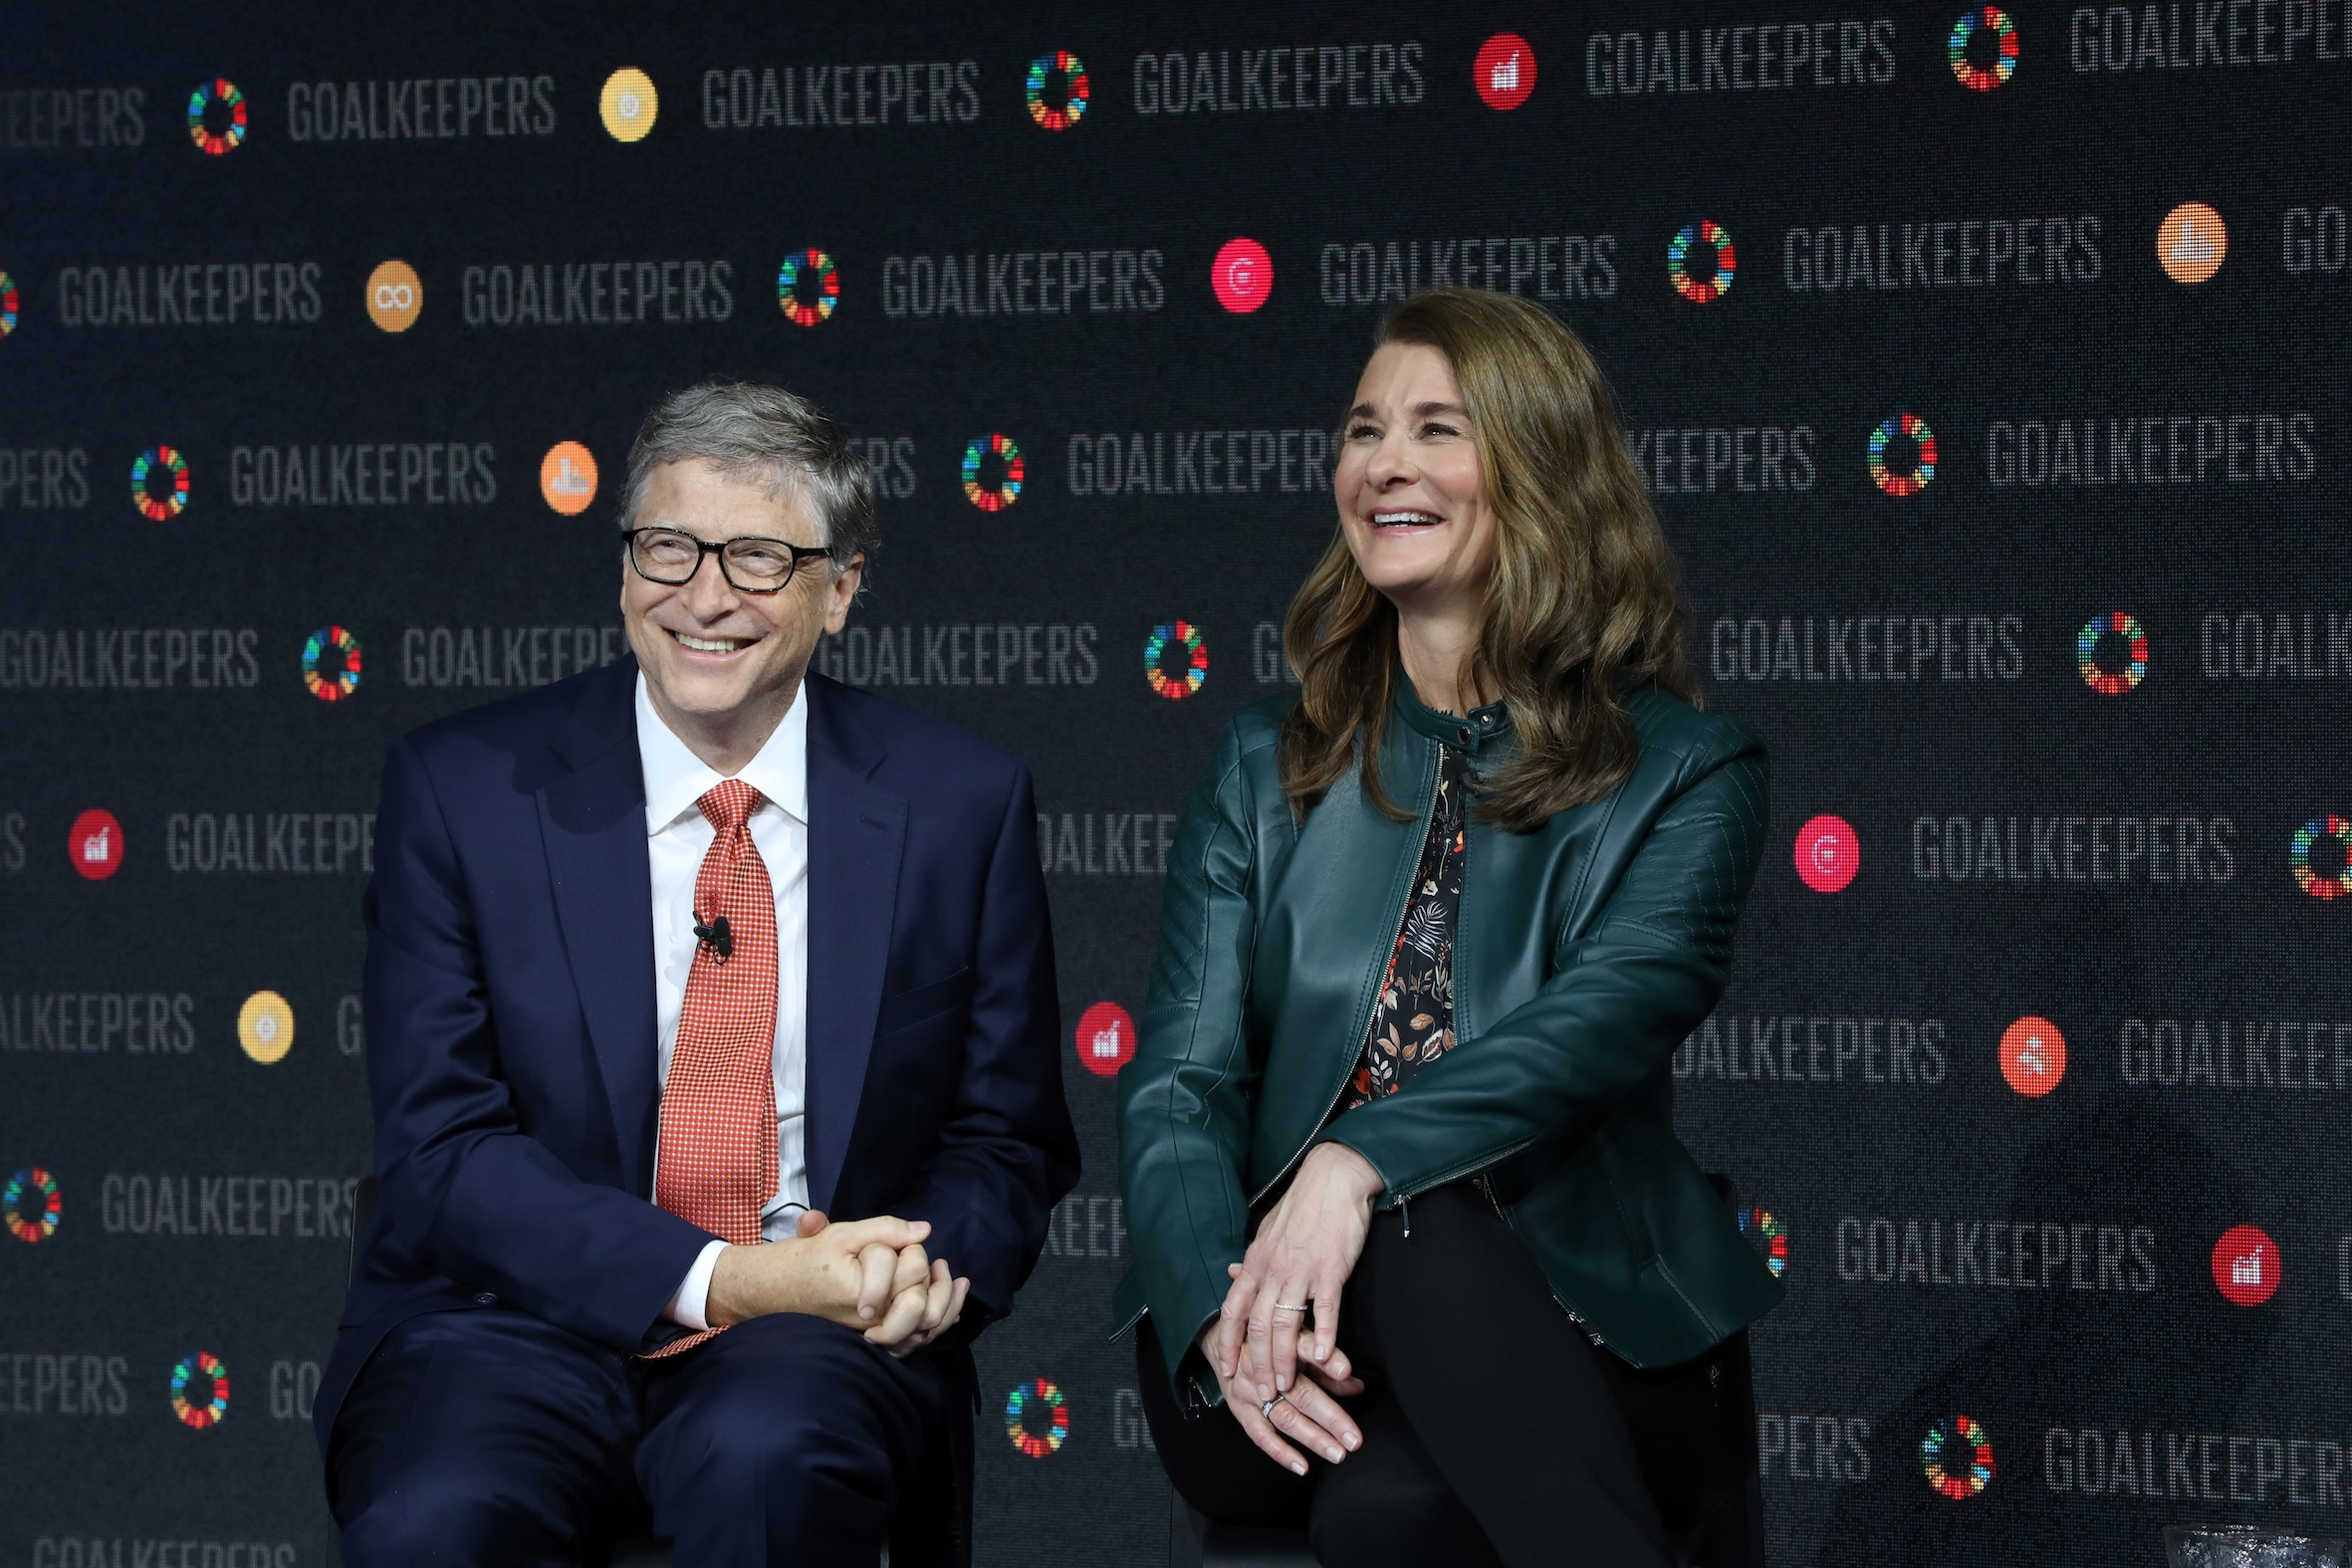 Examining Inequality: a look into the Gates Foundation Goalkeepers report 2019